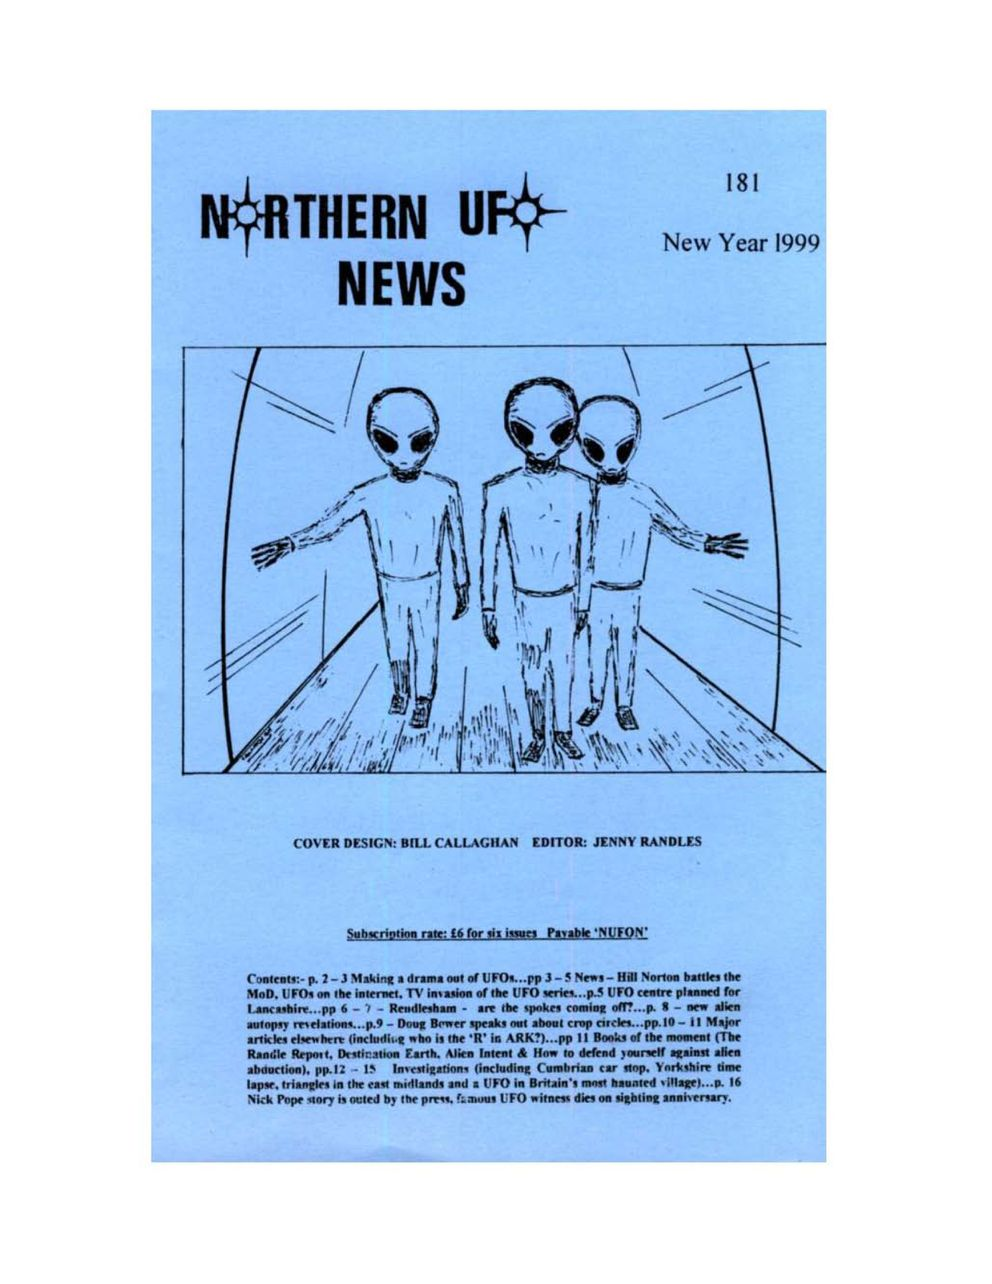 Adyson Wright, Fairbanks UFO researcher, has a collection of UFO magazines from different eras. The is the Northern UFO News from 1999.